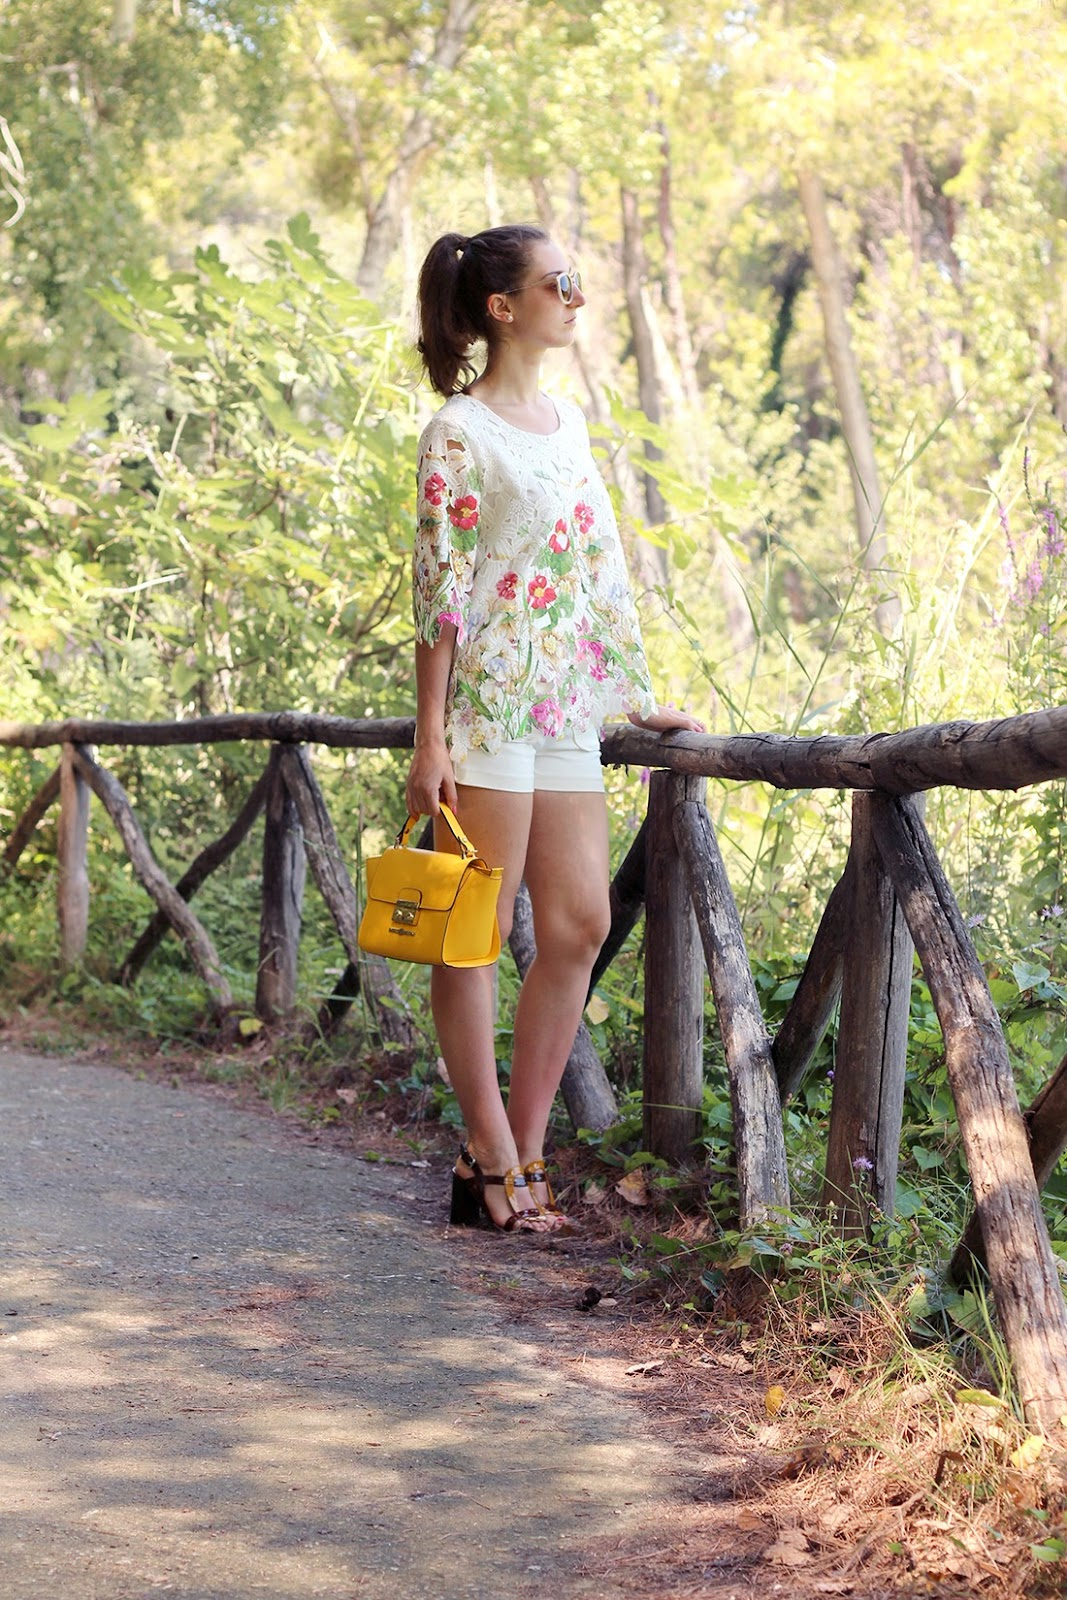 fashion style blogger outfit ootd italian girl italy trend vogue glamour pescara pablo baldini bag chic wish top flowers stradivarius shorts bianca di heels shoes bijou brigitte sunglasses